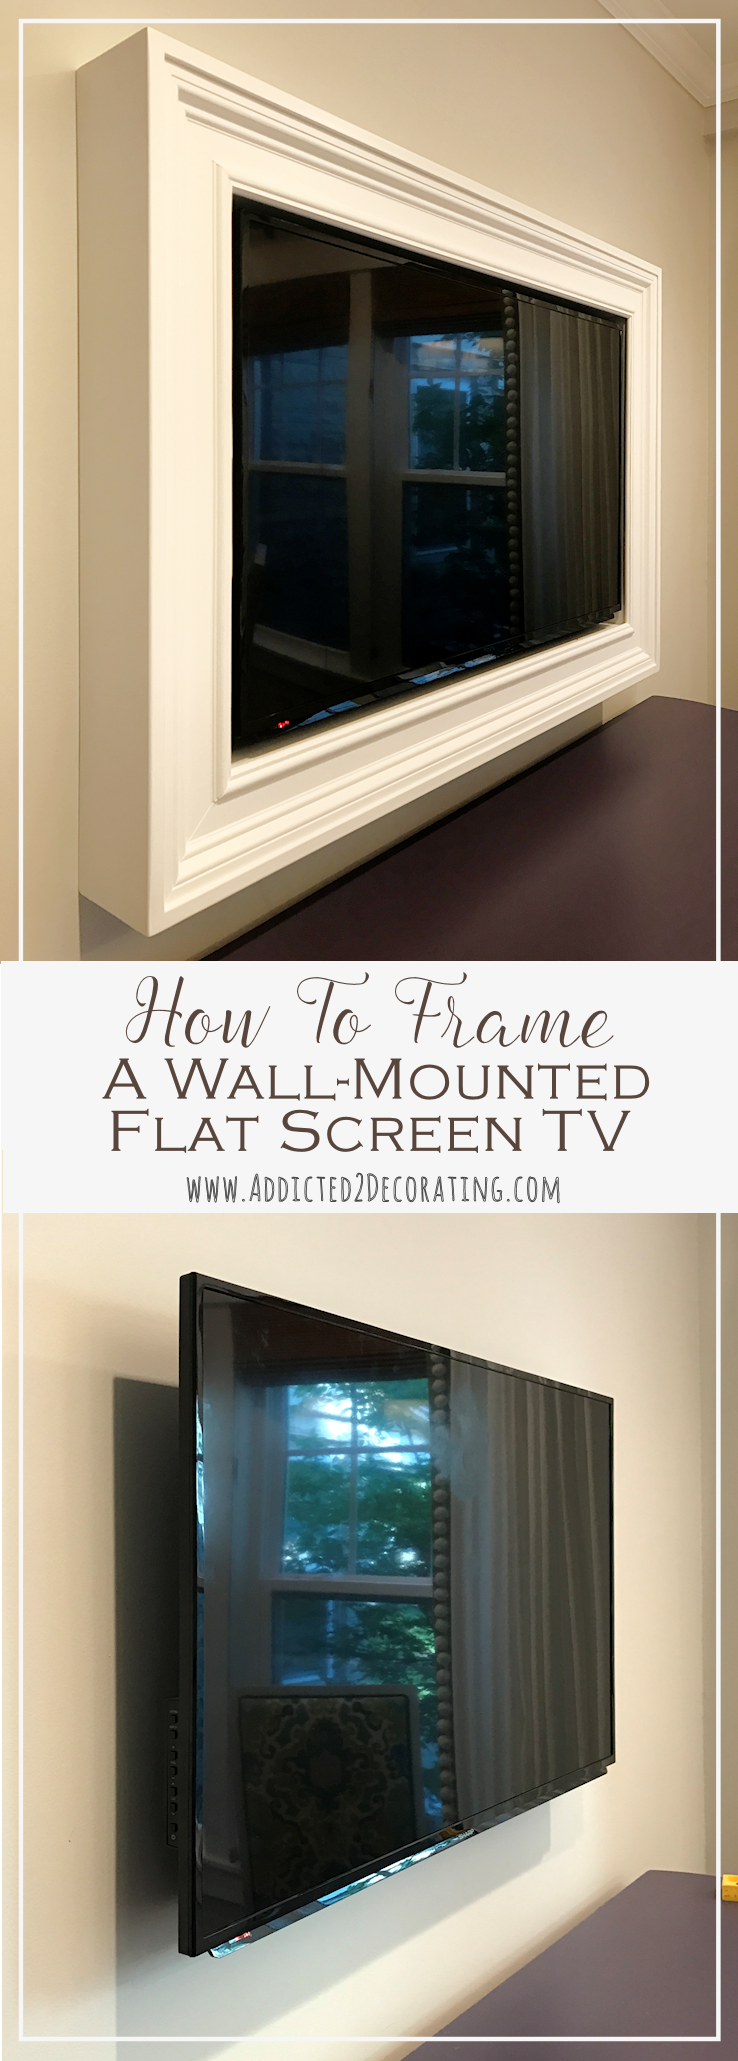 Custom DIY Frame For Wall-Mounted TV – Finished! | Bloggers Best DIY ...